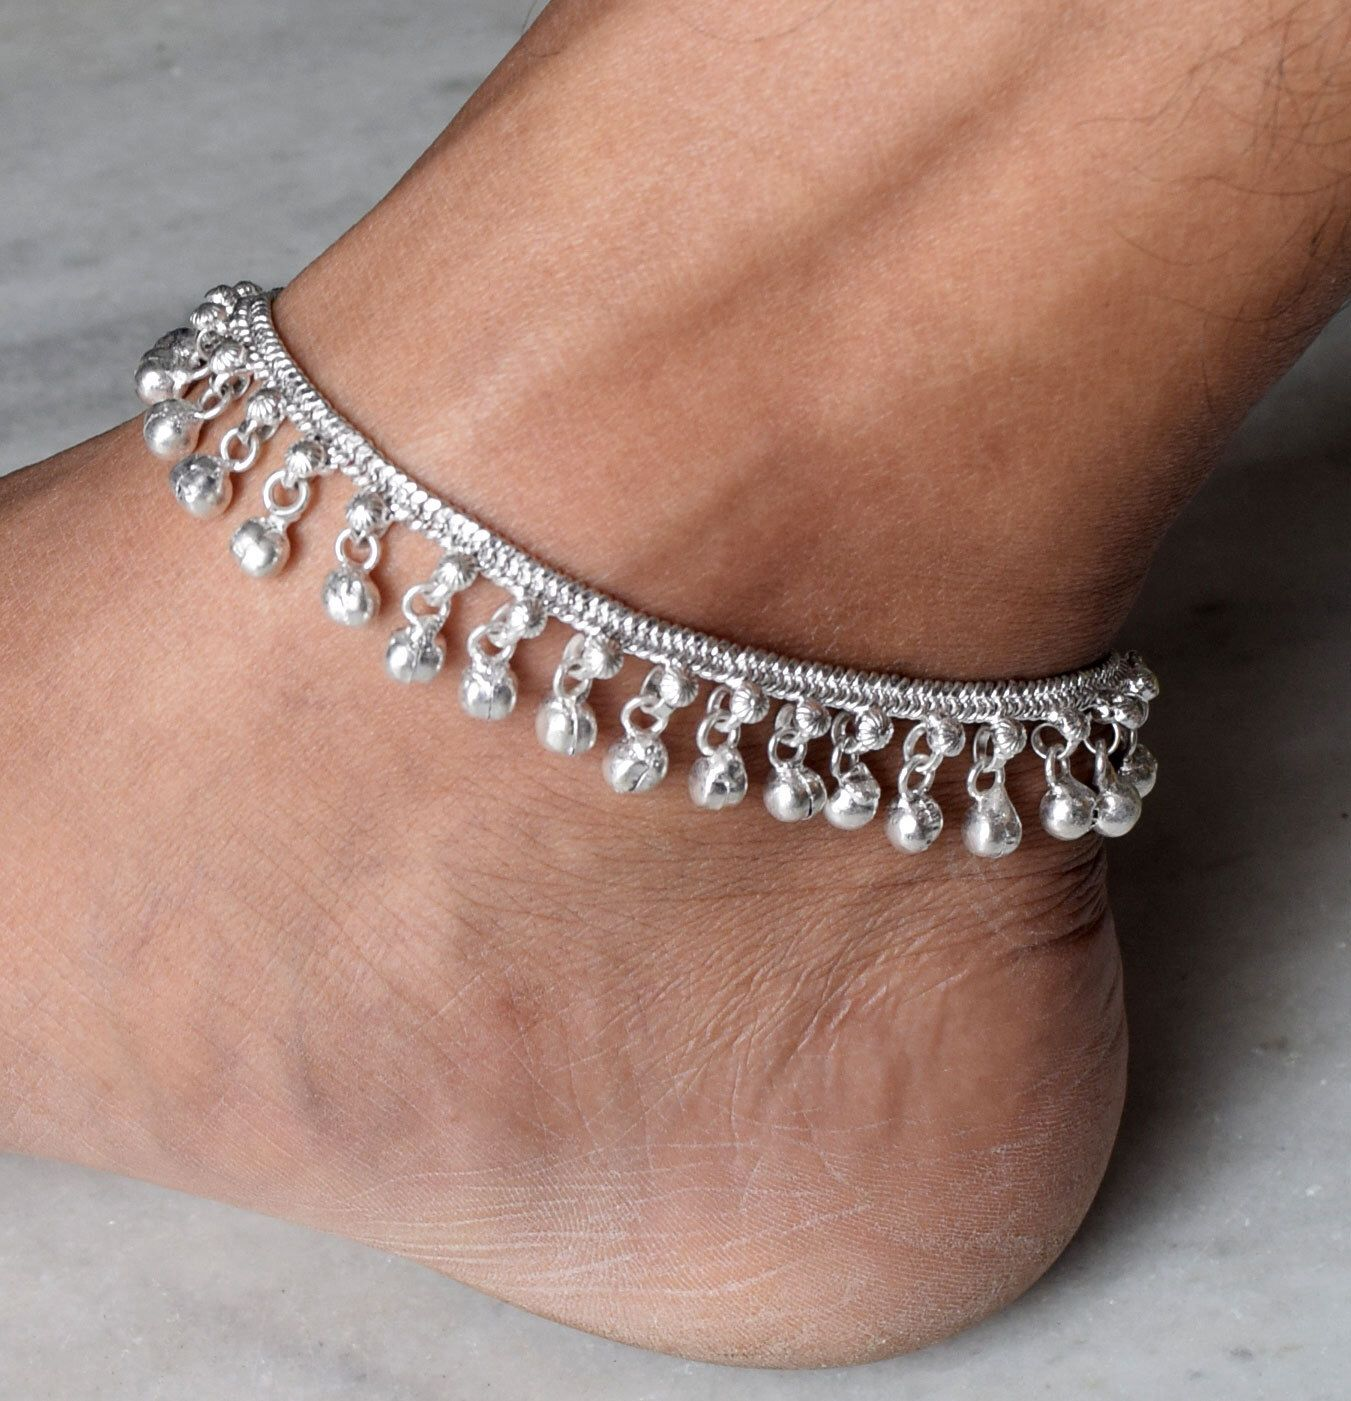 chain gold store ankle bracelet anklet product sandal wholesale nbsp foot jewelry barefoot bracelets charms adjustable peach heart plated beach